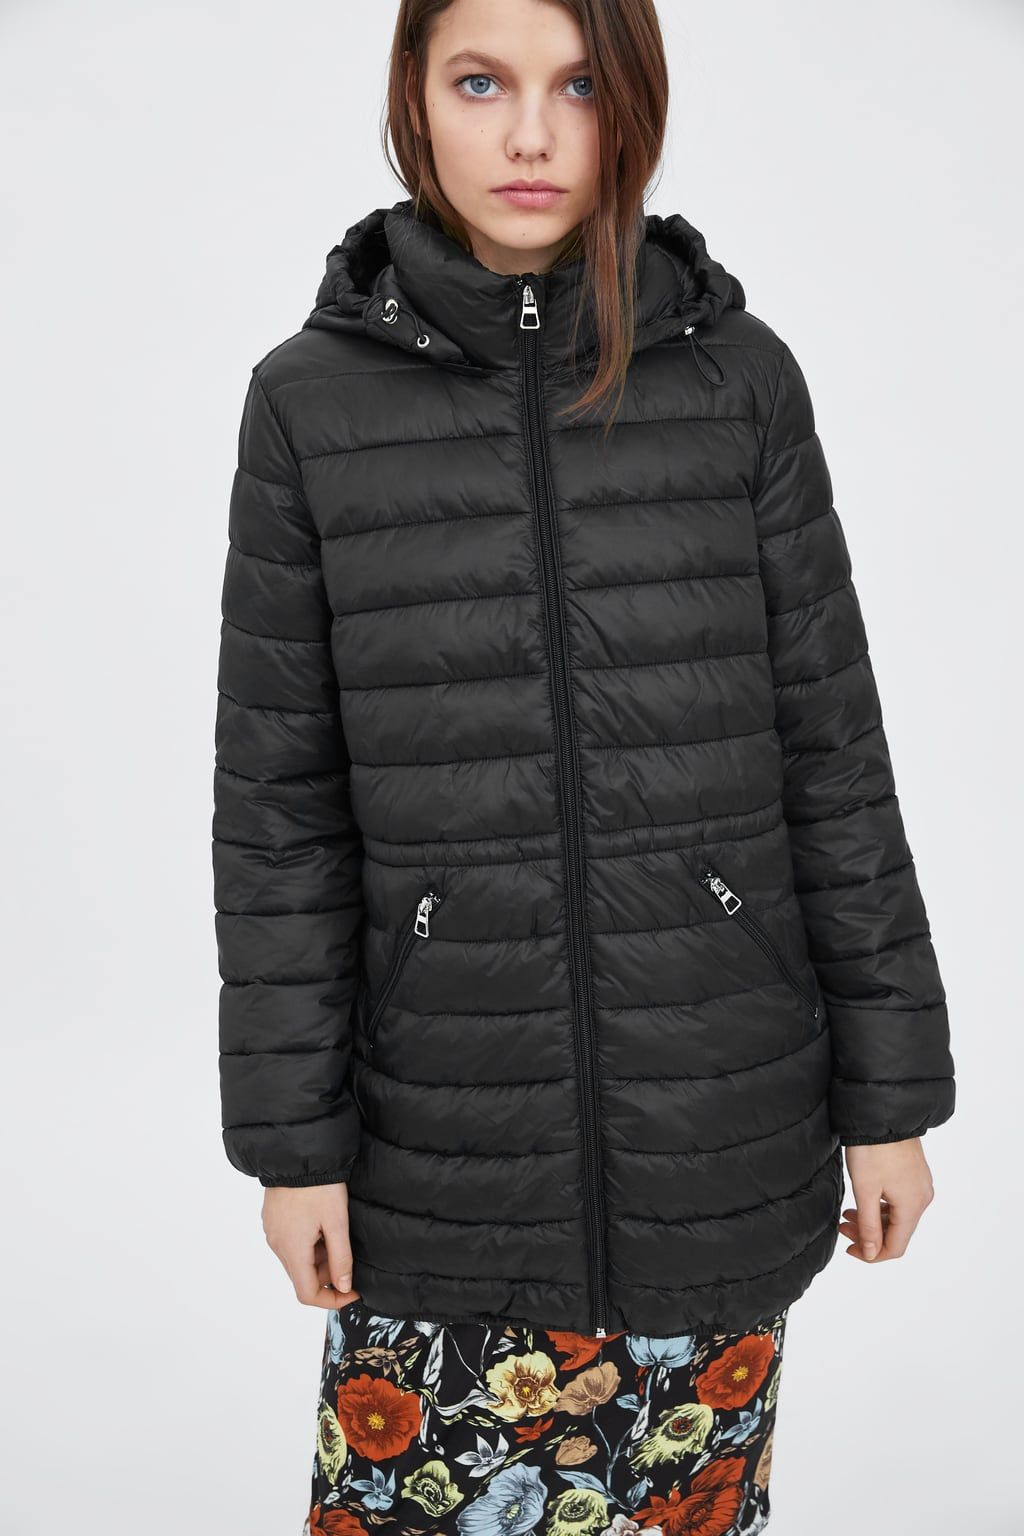 Image 2 Of Foldaway Lightweight Puffer Coat From Zara Puffer Coat Coat Puffer [ 1536 x 1024 Pixel ]